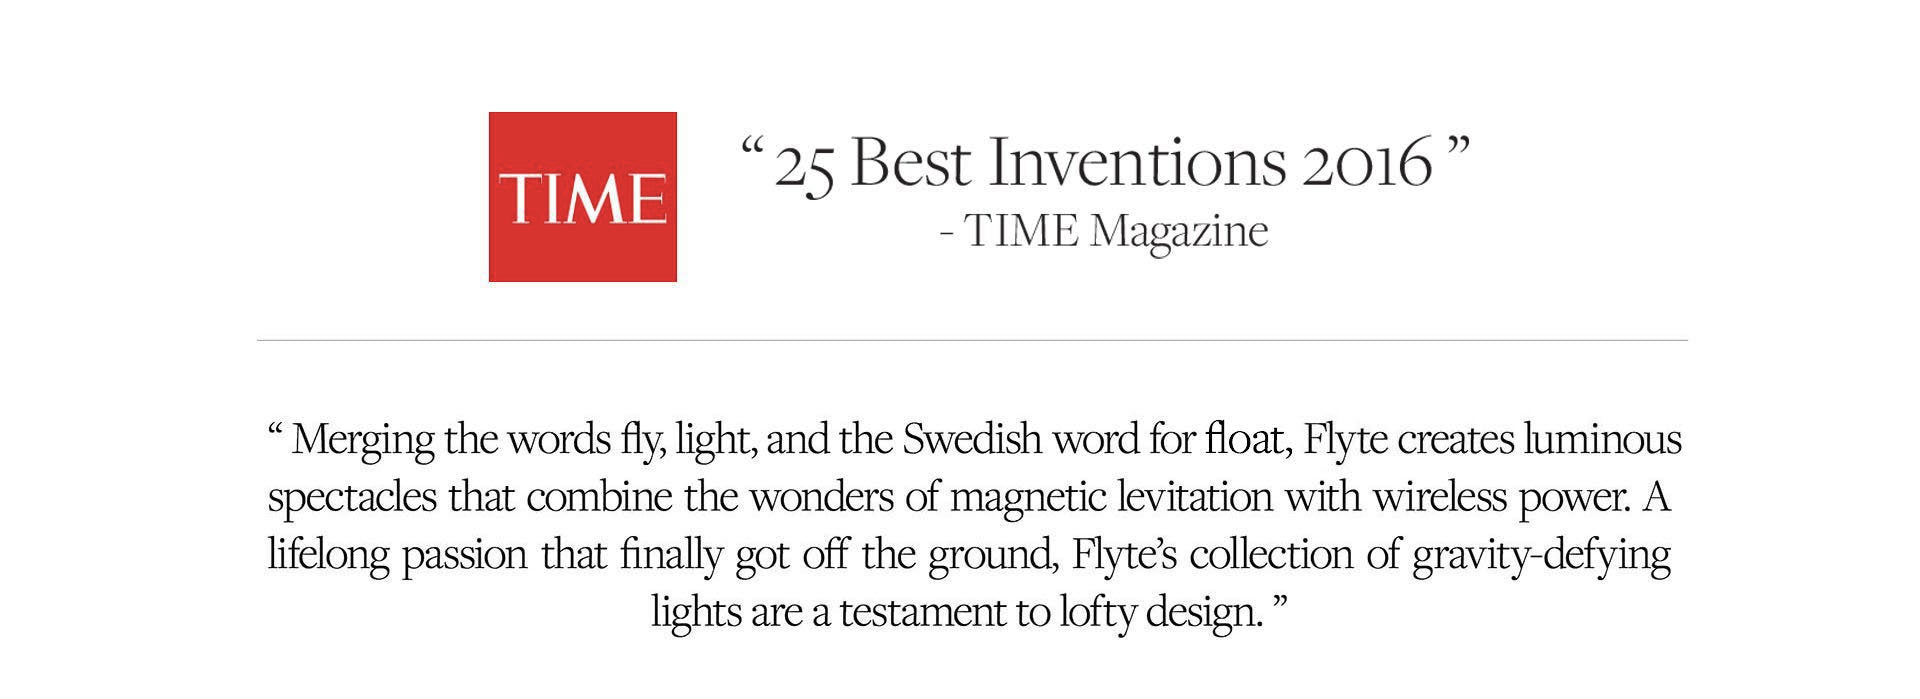 TIME magazine about FLYTE levitating products